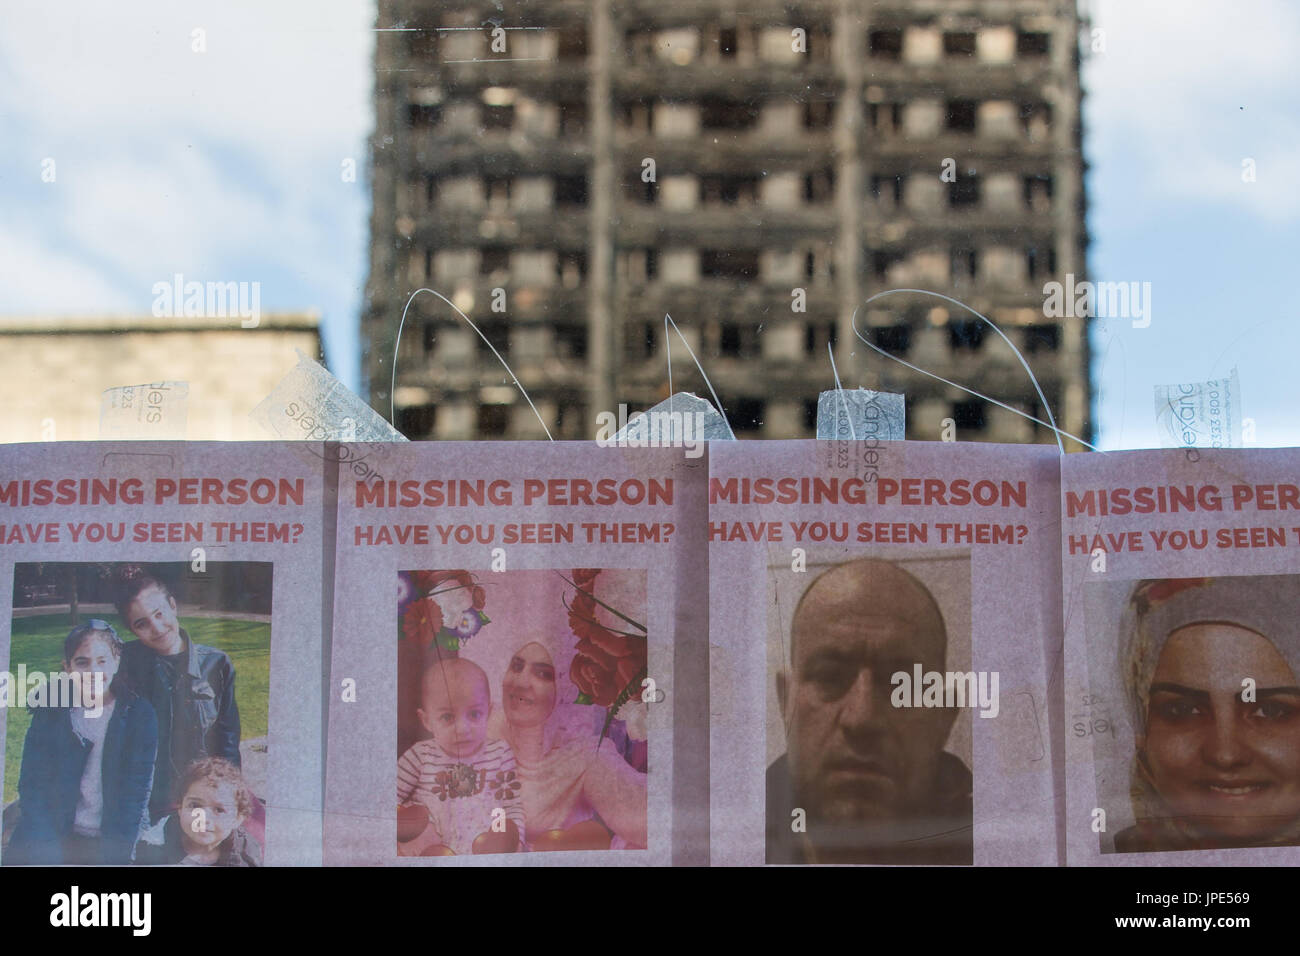 A bus stop displays posters of missing people following the devastating fire, the charred remains of Grenfell Tower can be seen in the background - Stock Image